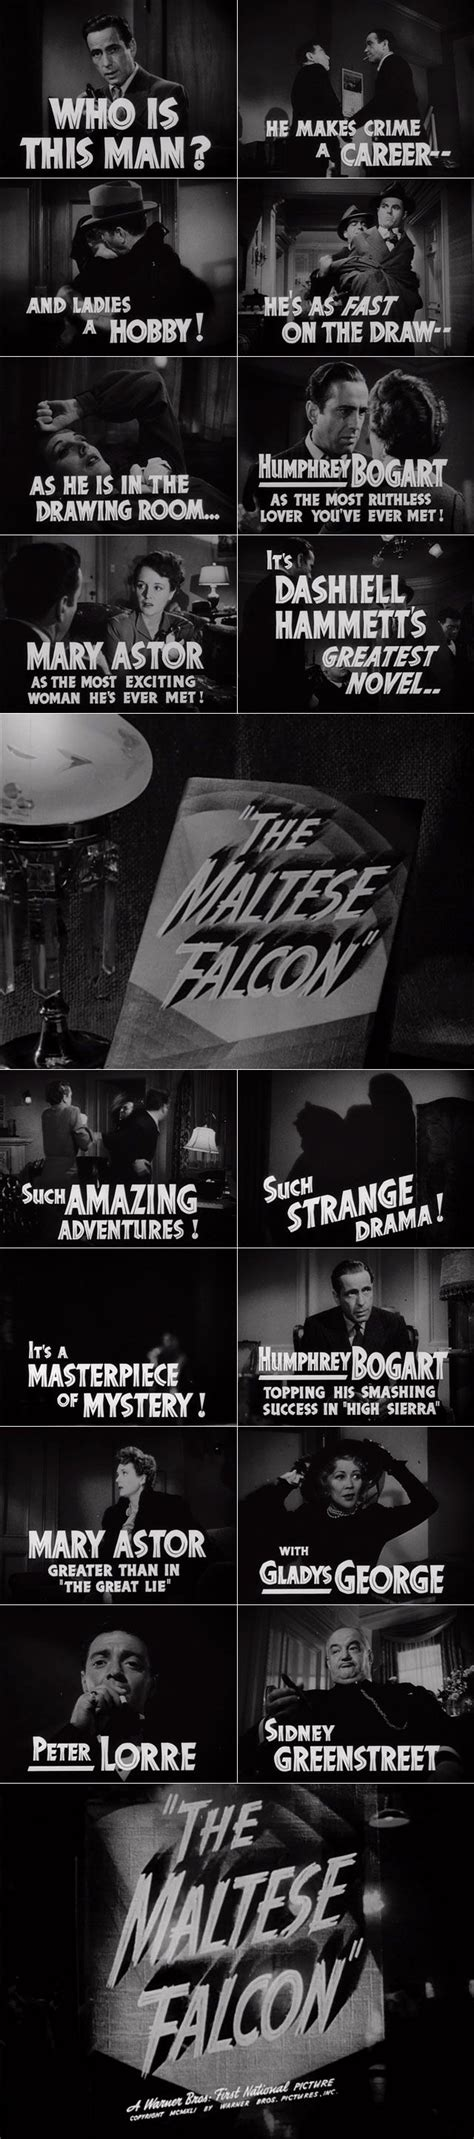 the maltese falcon collectors the maltese falcon 1941 trailer typography the movie title stills collection the maltese